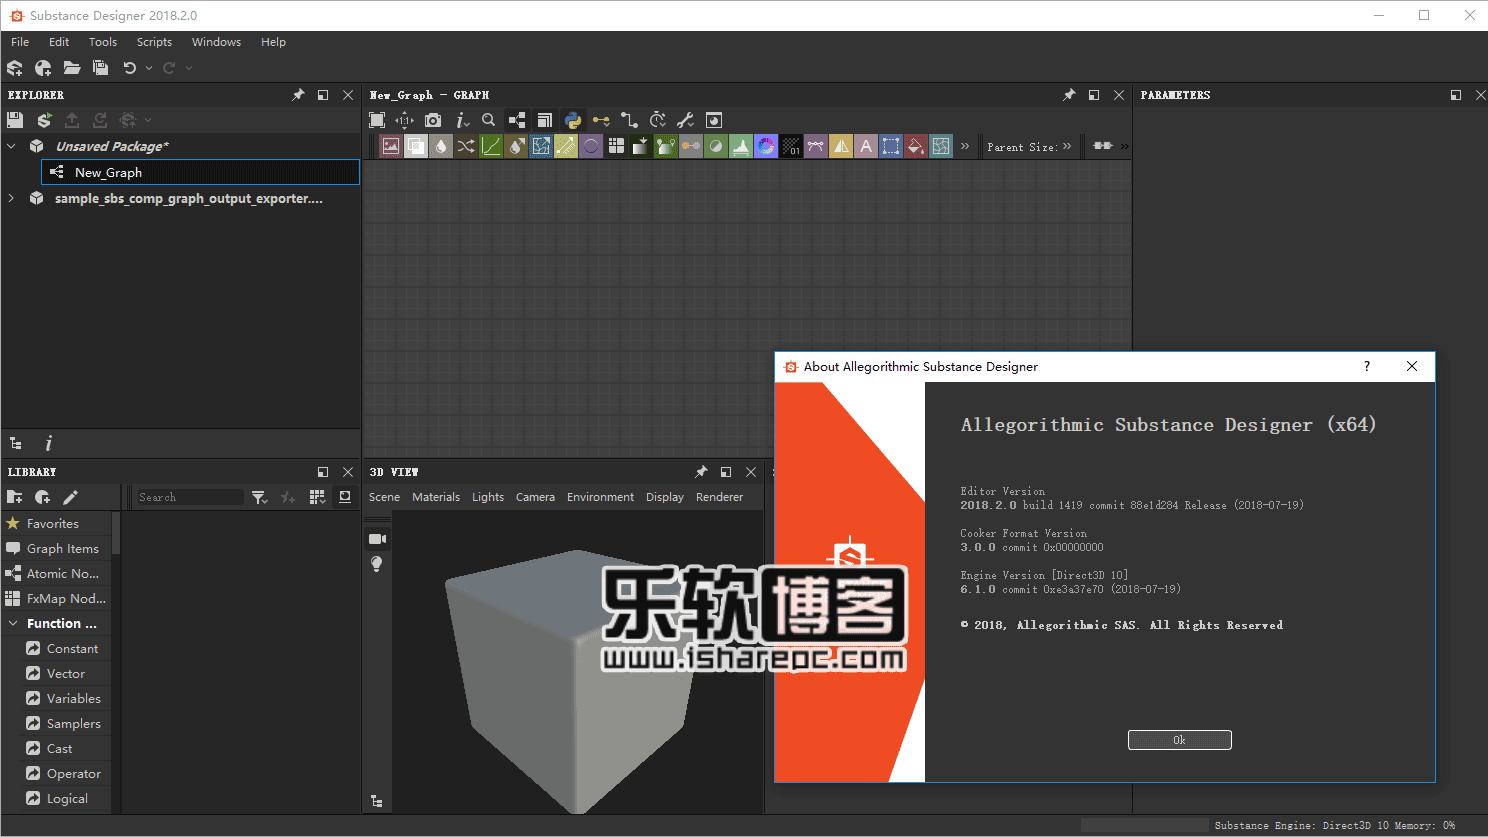 Allegorithmic Substance Designer 2018.2.0破解版